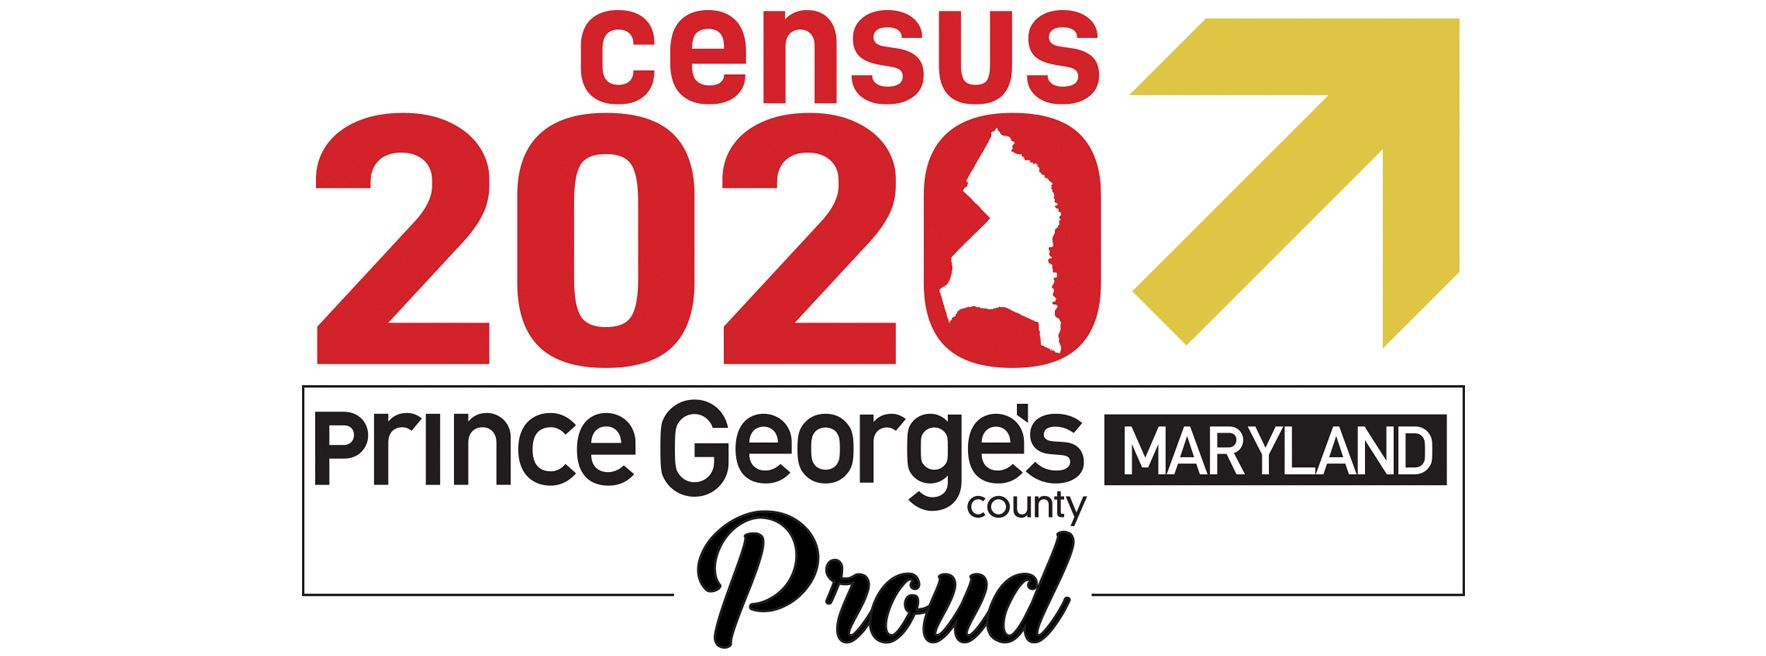 Census 2020 web banner